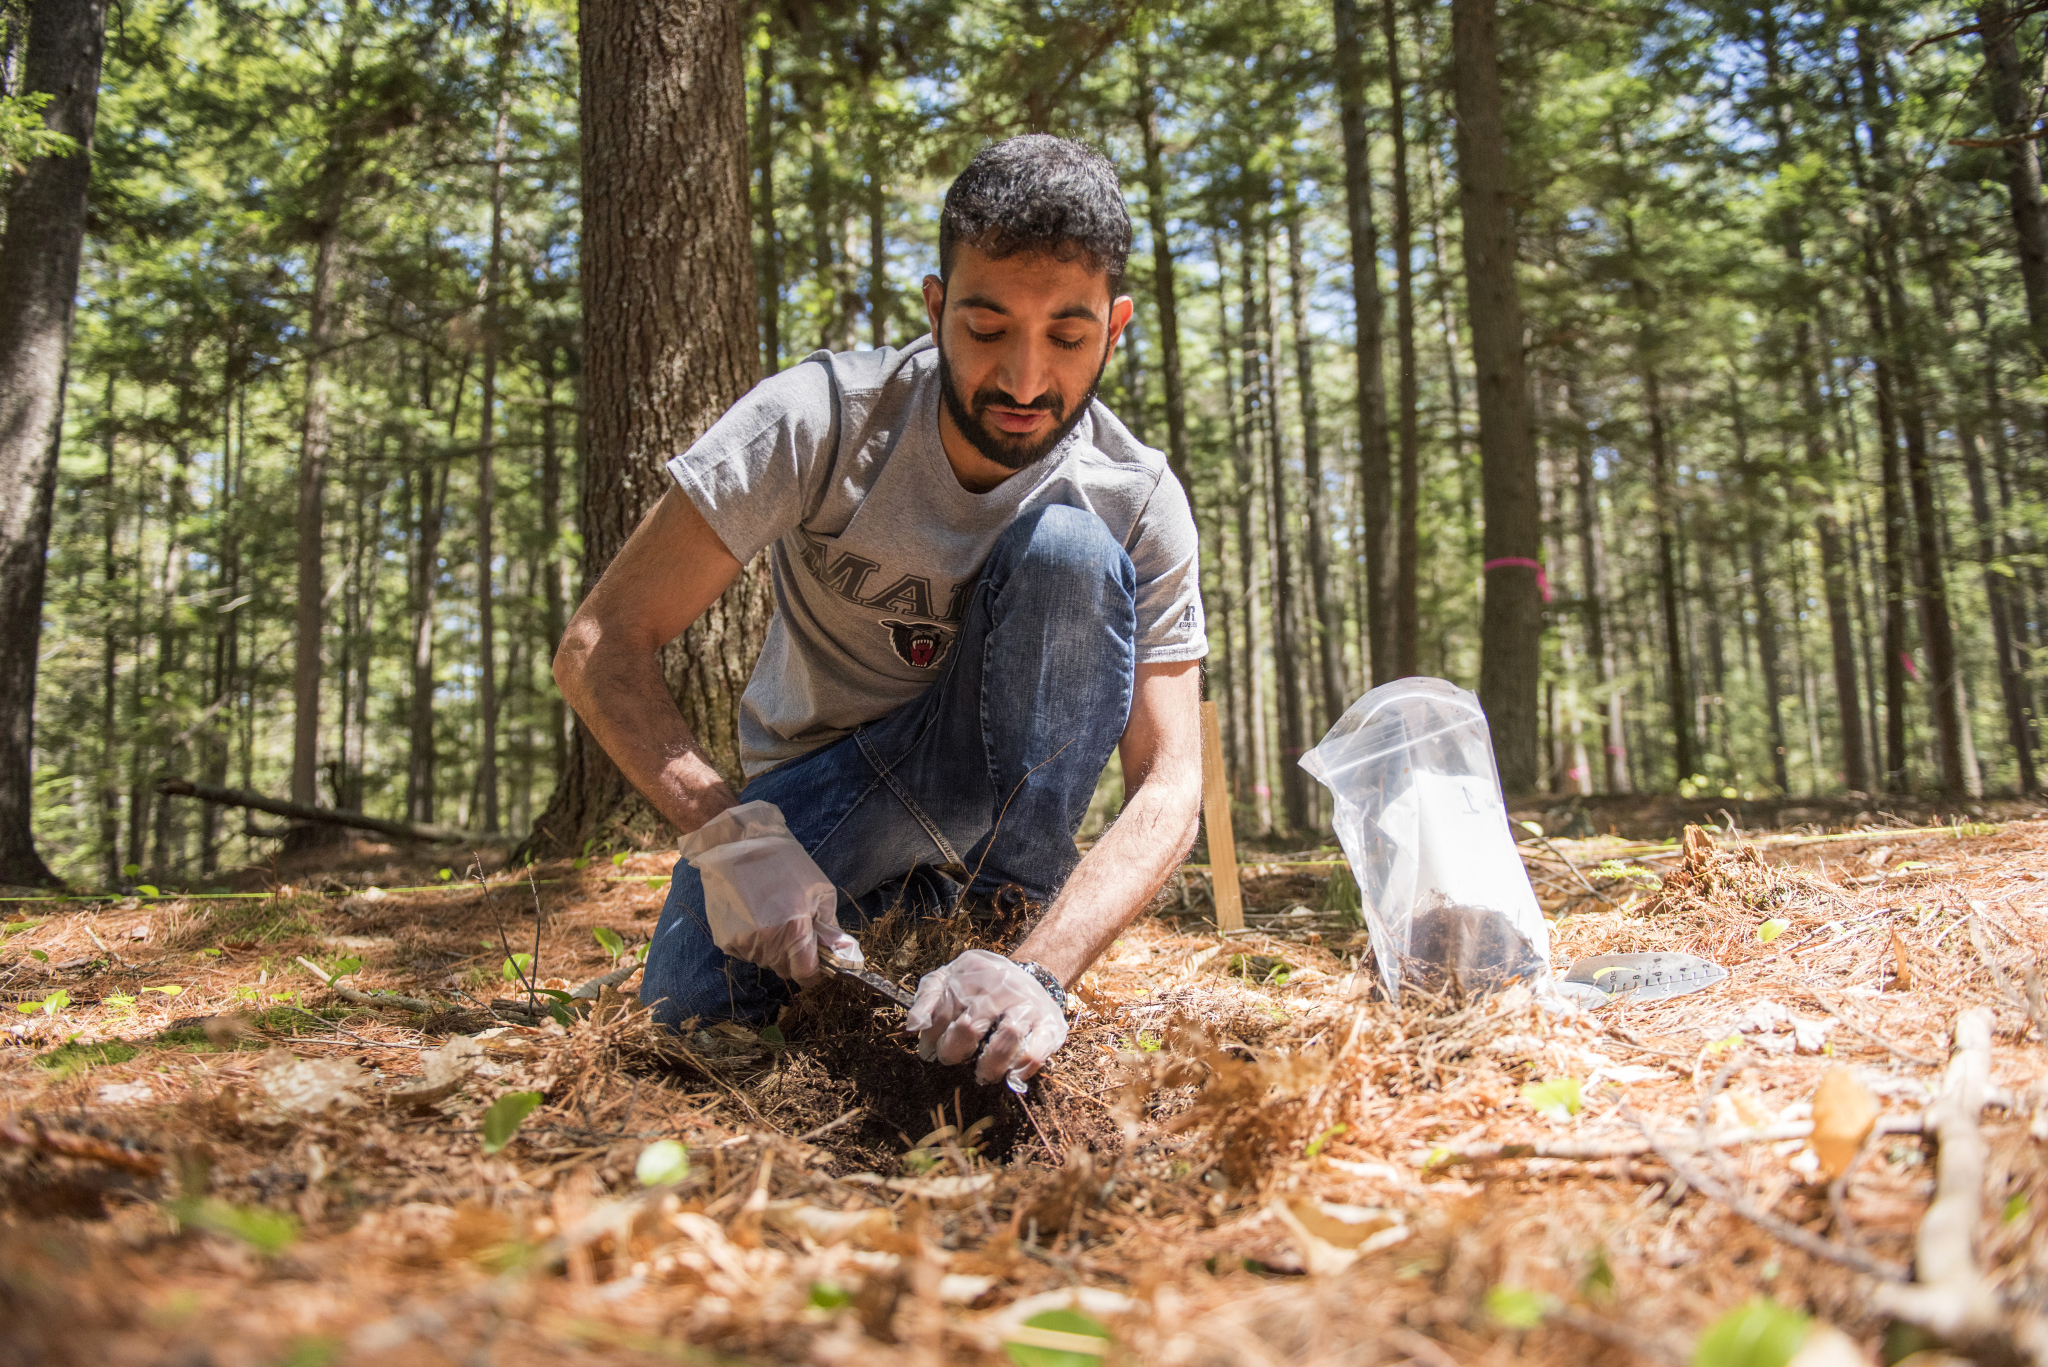 Kaizad - who received his undergraduate degree in India - is sampling forest soils for study of their role in carbon storage.  (University of Maine)